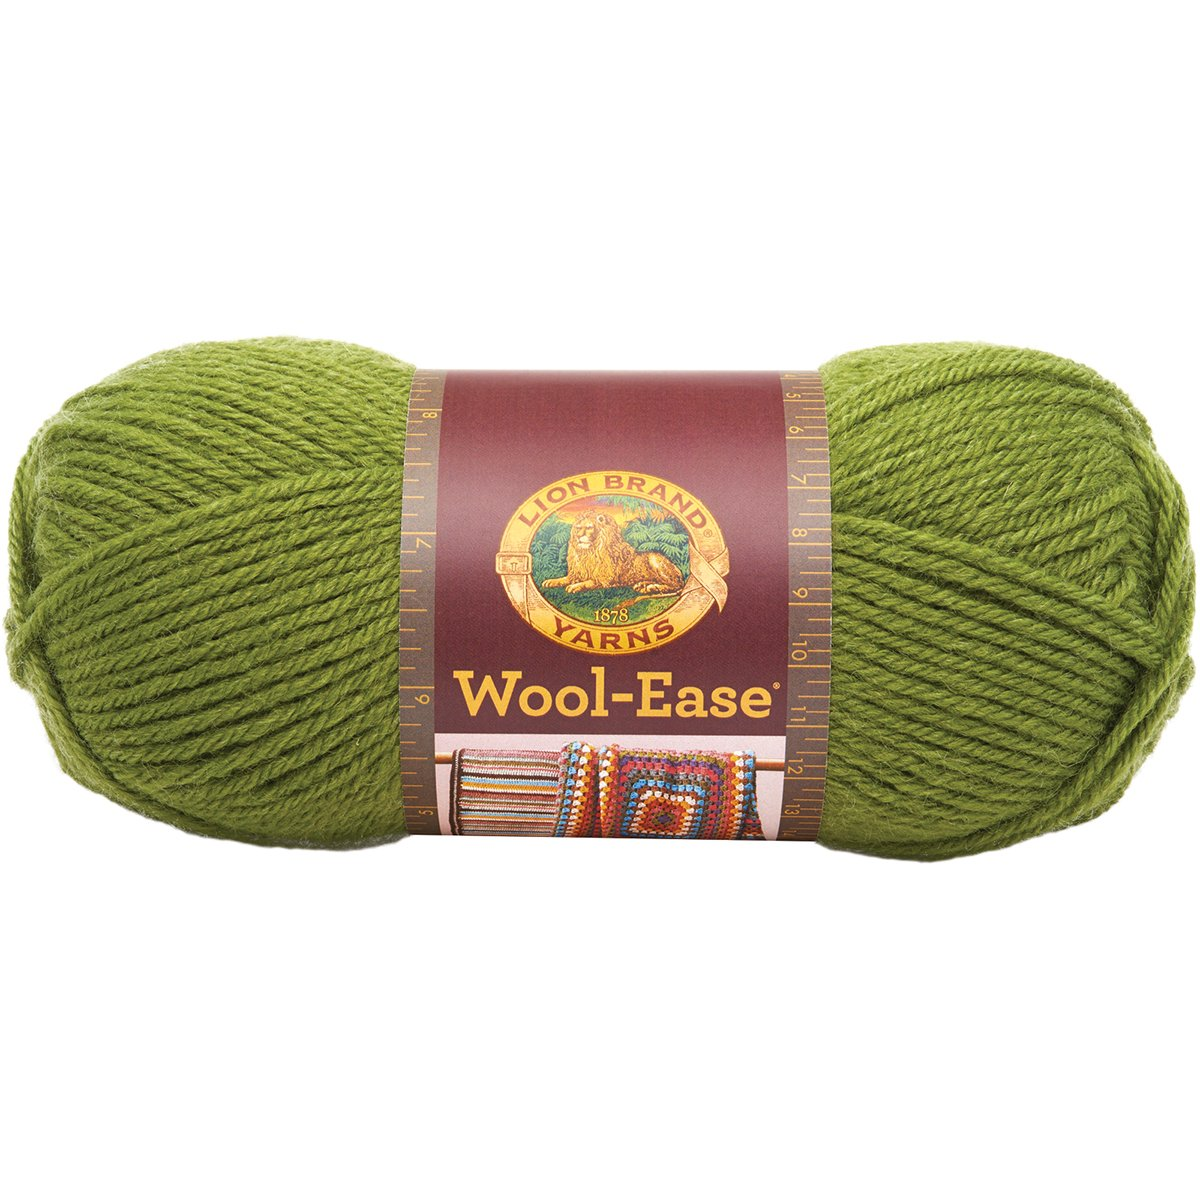 (Avocado) - Lion Brand Yarn 620-174B Wool-Ease Yarn, Avocado B003D7E030